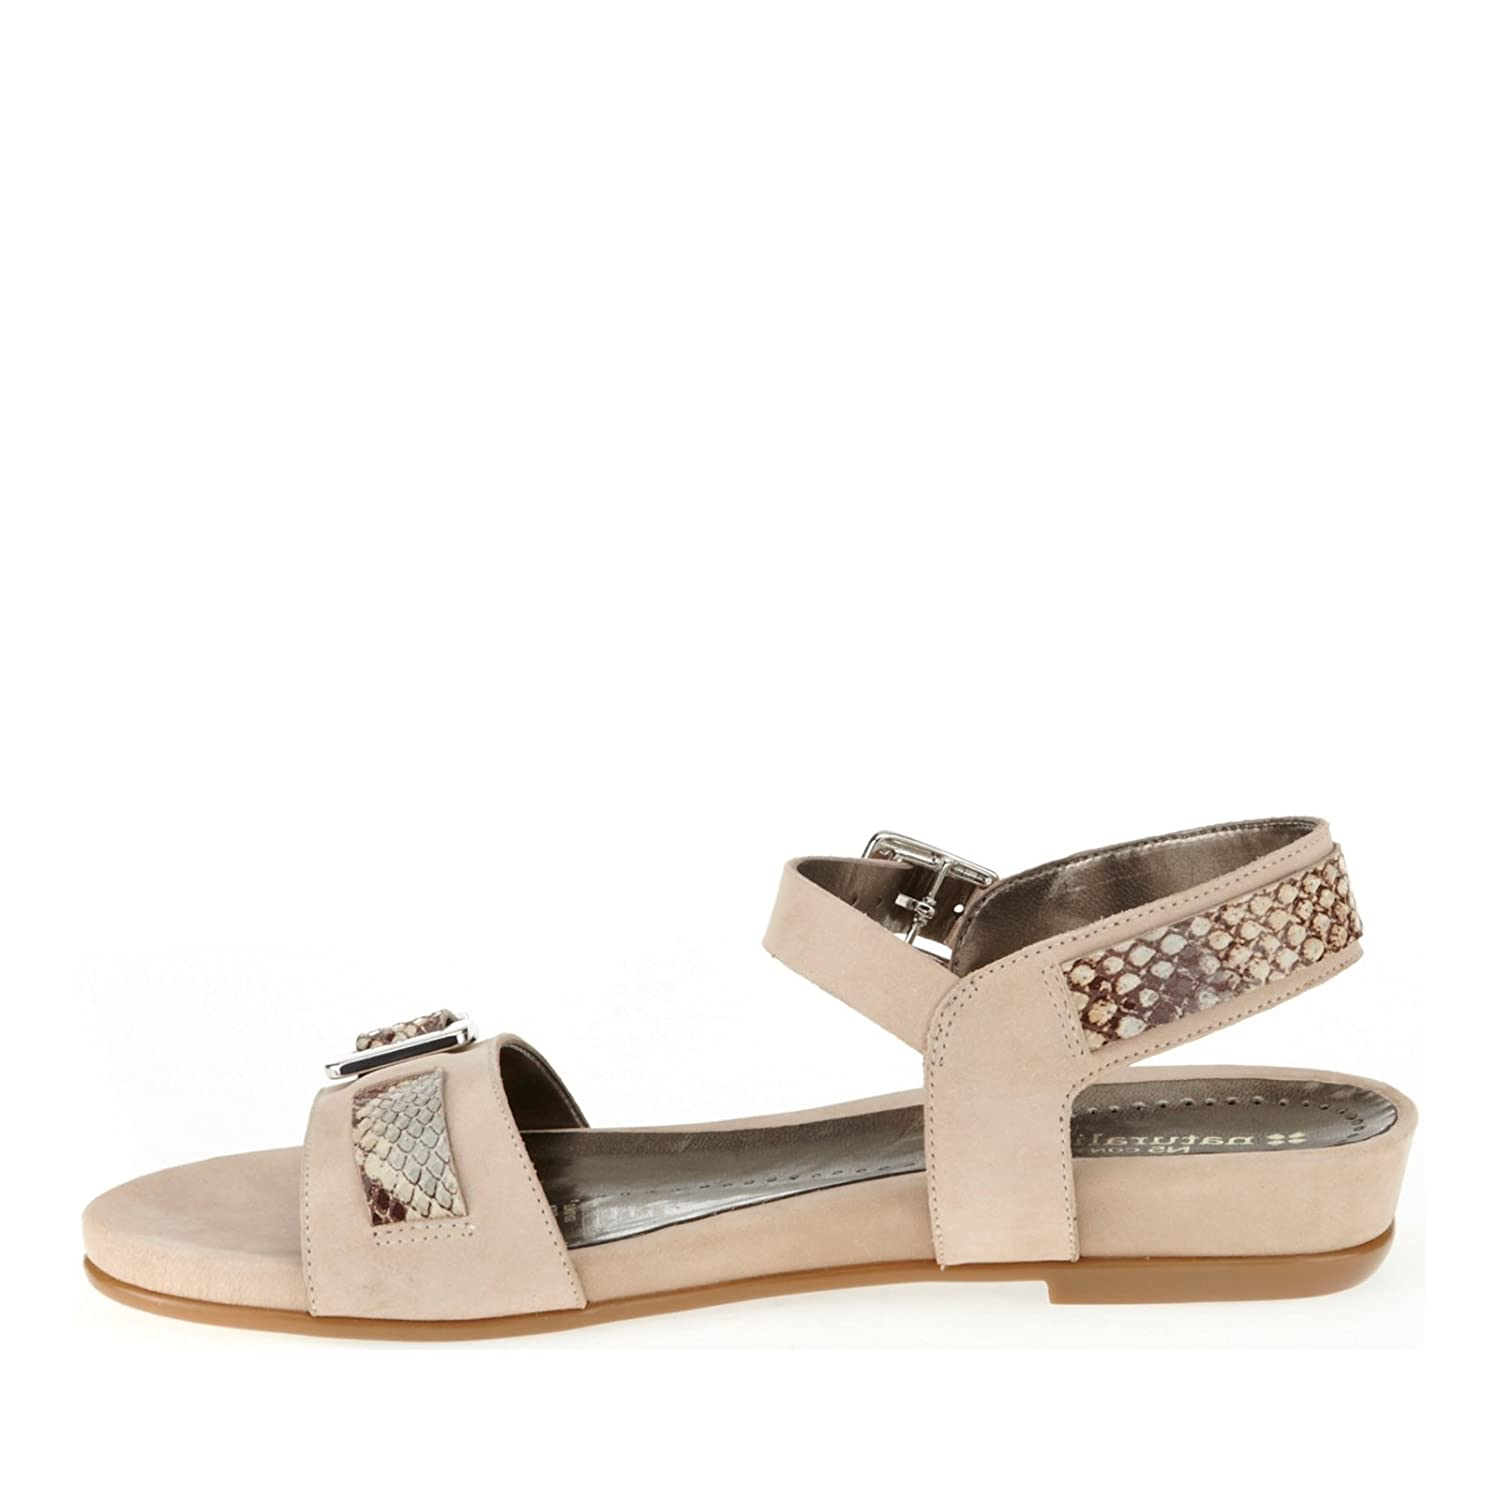 Naturalizer Contour Cairo Strappy Sandals Tender Taupe Vk Foaming Dew 75 W C Shoes